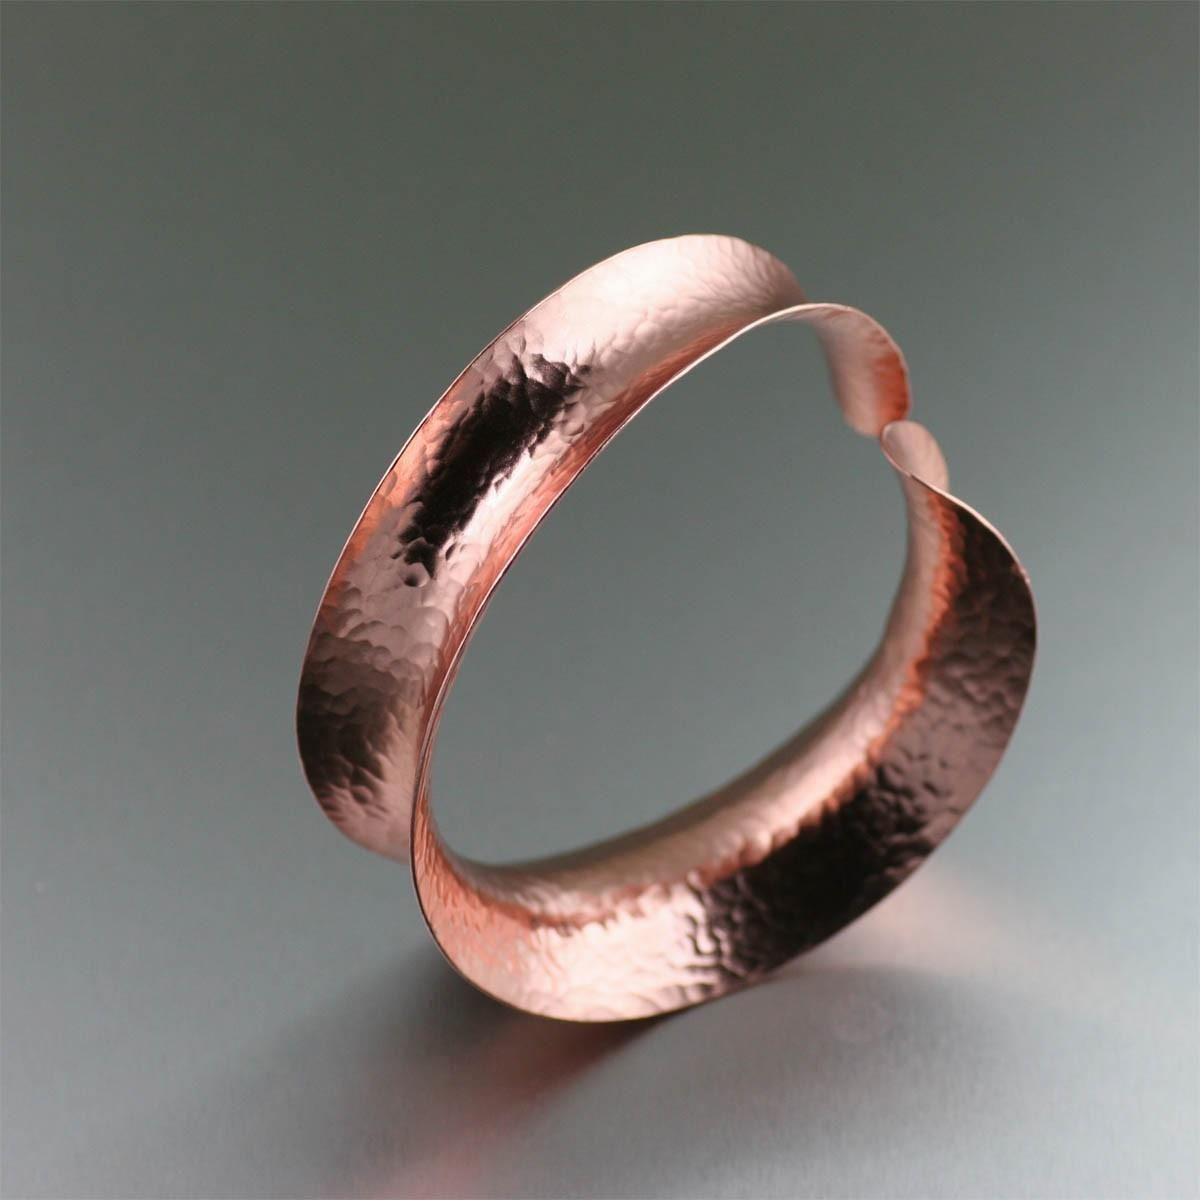 New! Hammered Copper Bangle Shown by https://www.ilovecopperjewelry.com/anticlastic-hammered-copper-bangle-bracelet.html #7thAnniversary #Jewelry